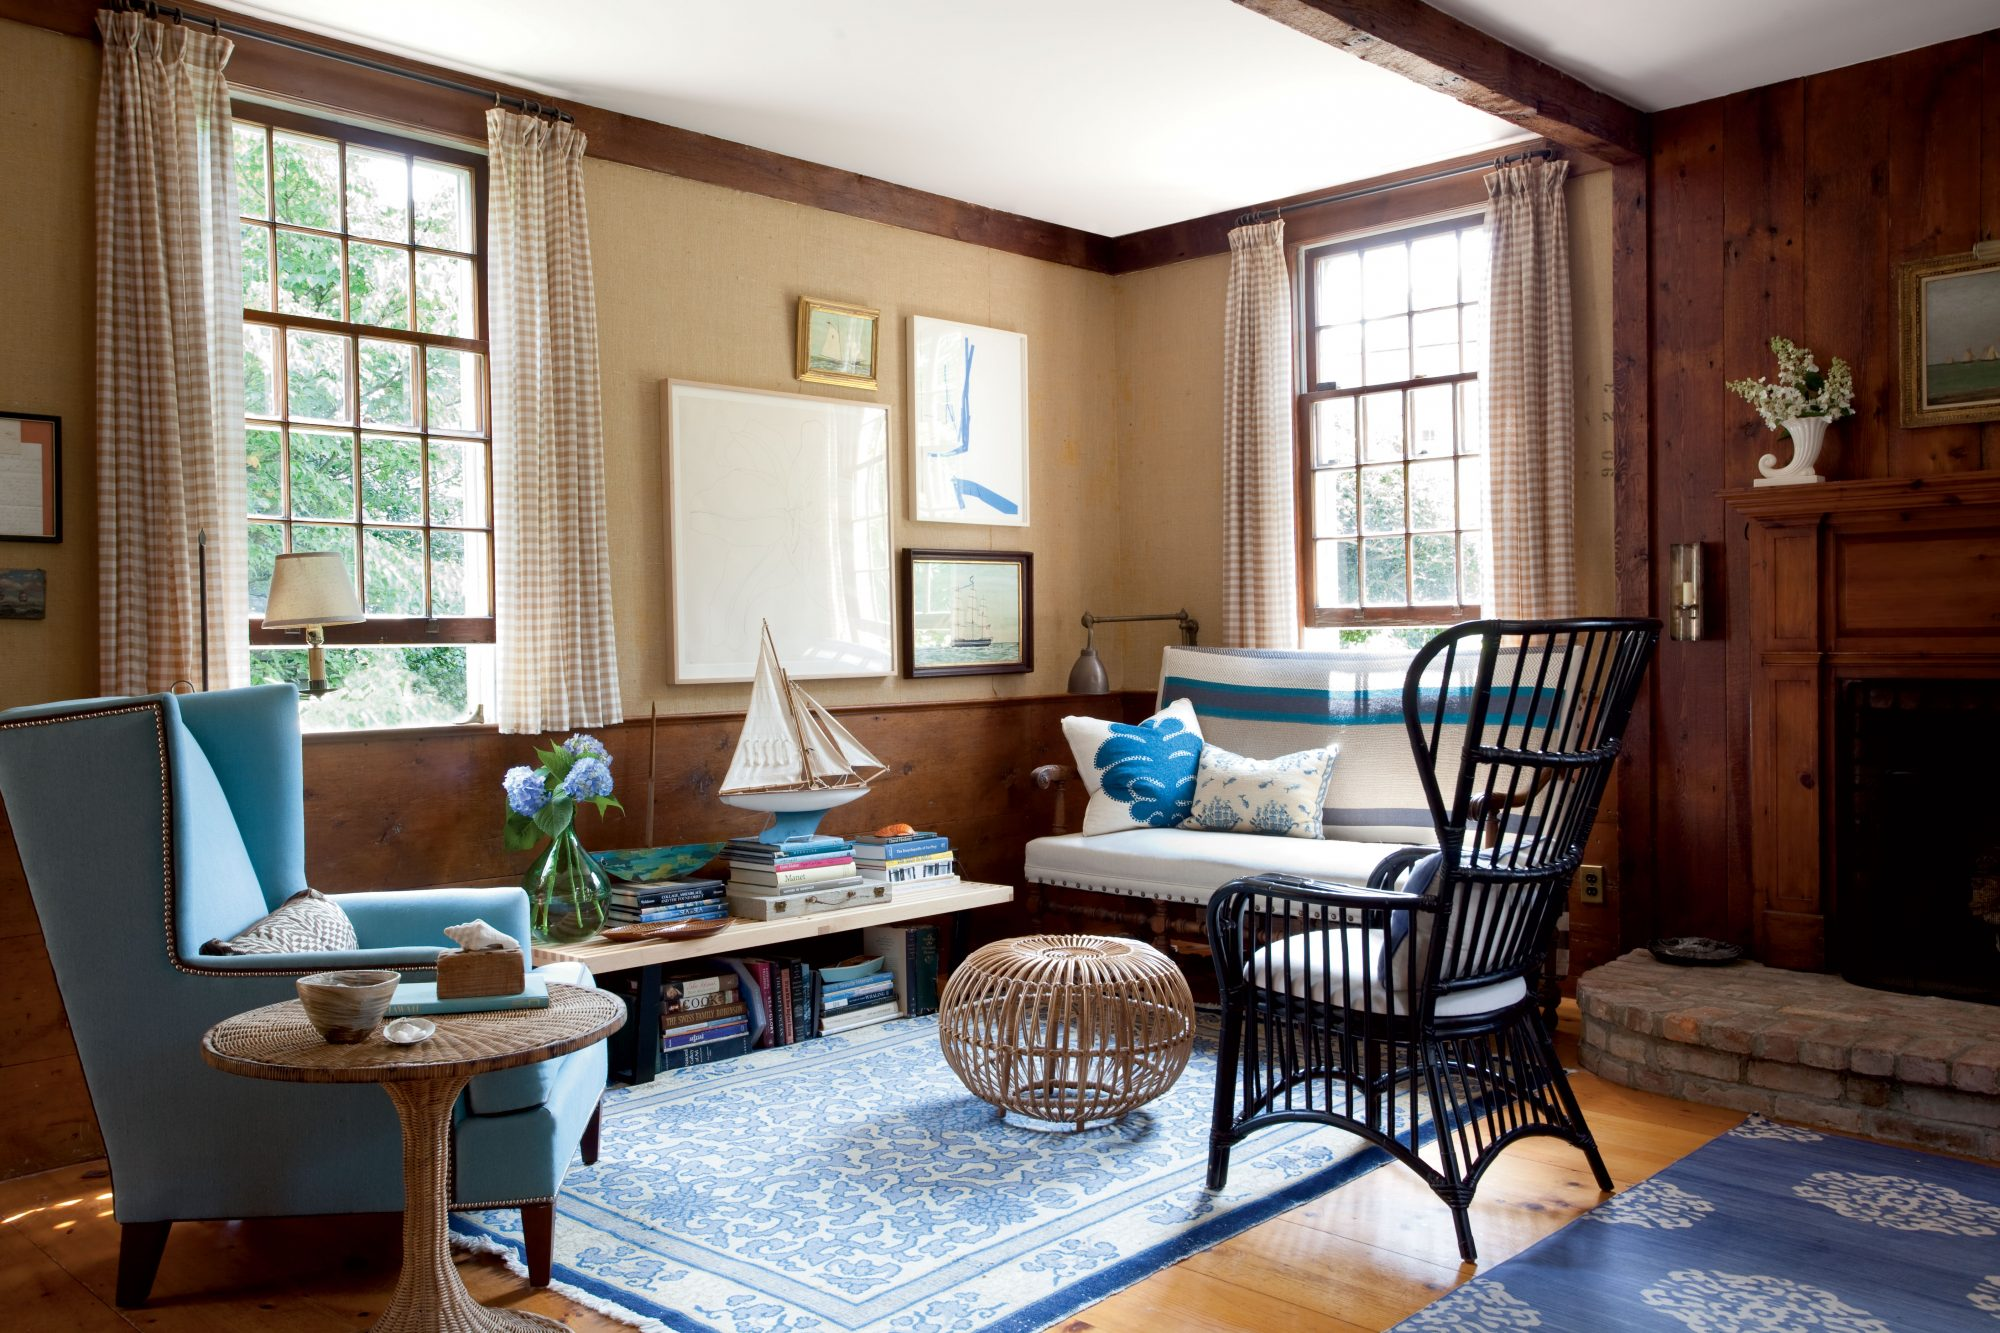 Light wicker furniture and a soft blue wing chair balance the heavier wood of the living room. For a super-casual, camplike feel, try hemming the curtains so they hit just at the windowsills. This look works especially well in rooms with high ceilings and wainscoting, which provides a natural visual cue for the shorter length.